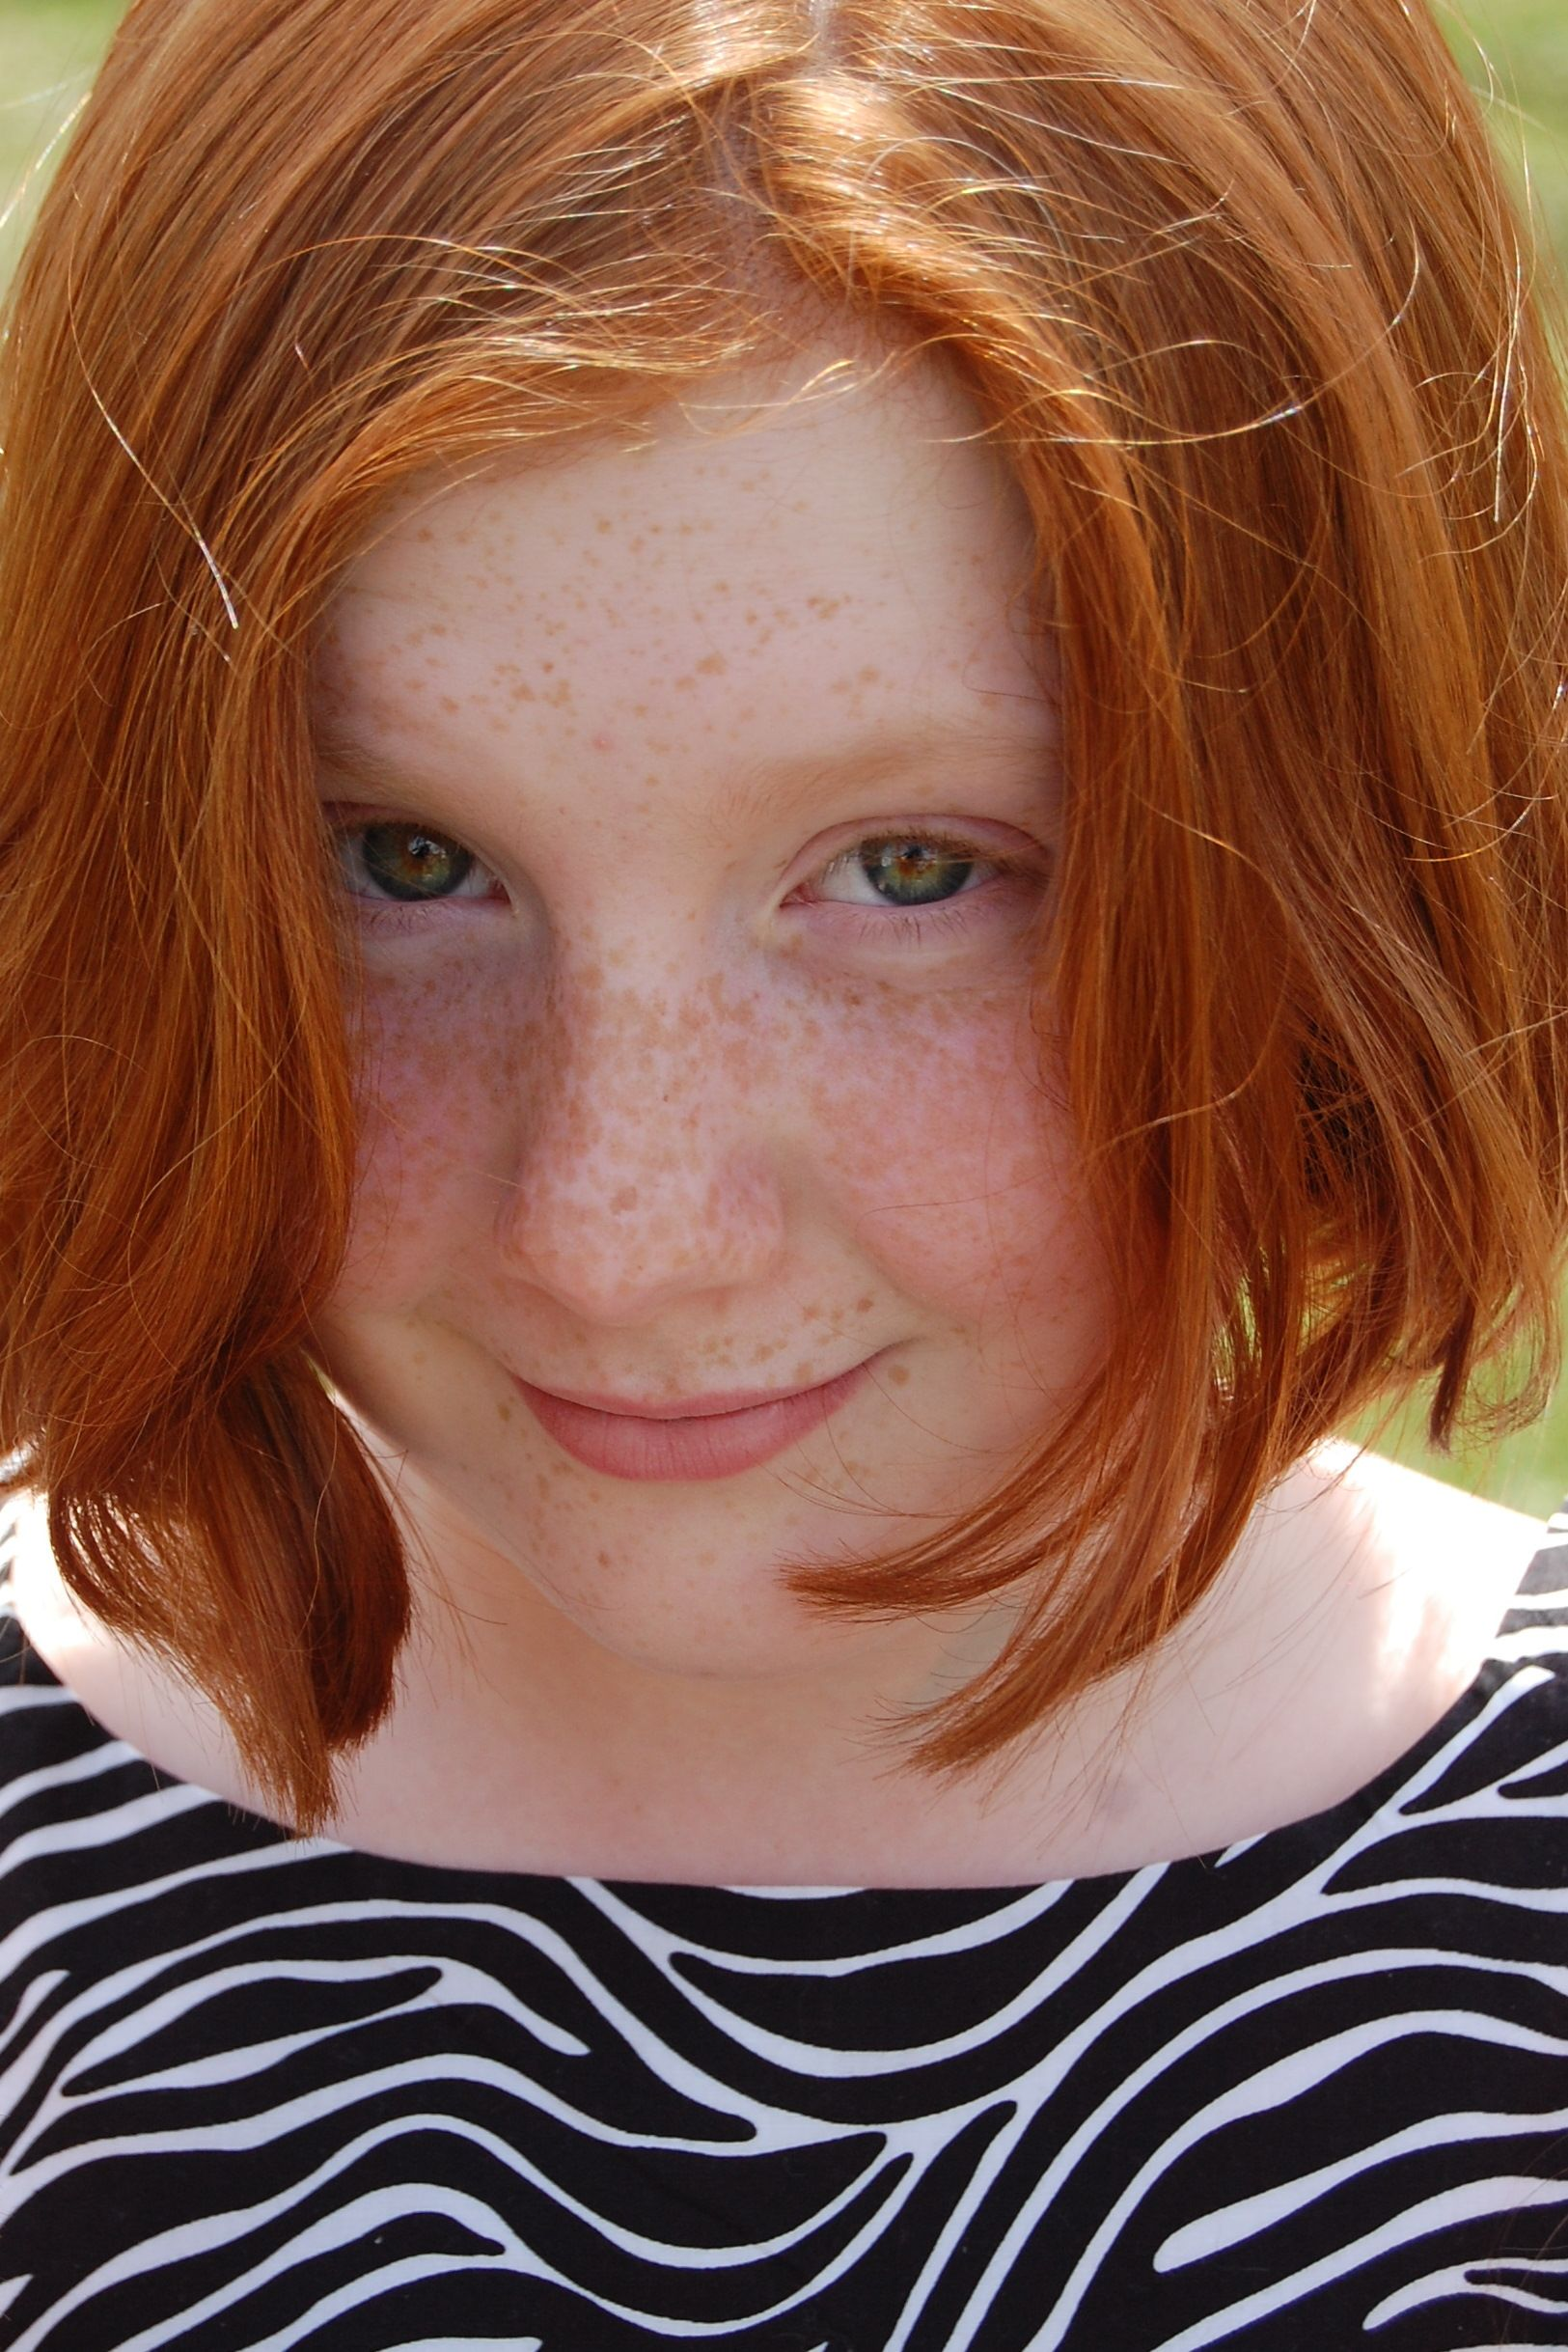 Hot very young redheads bed design